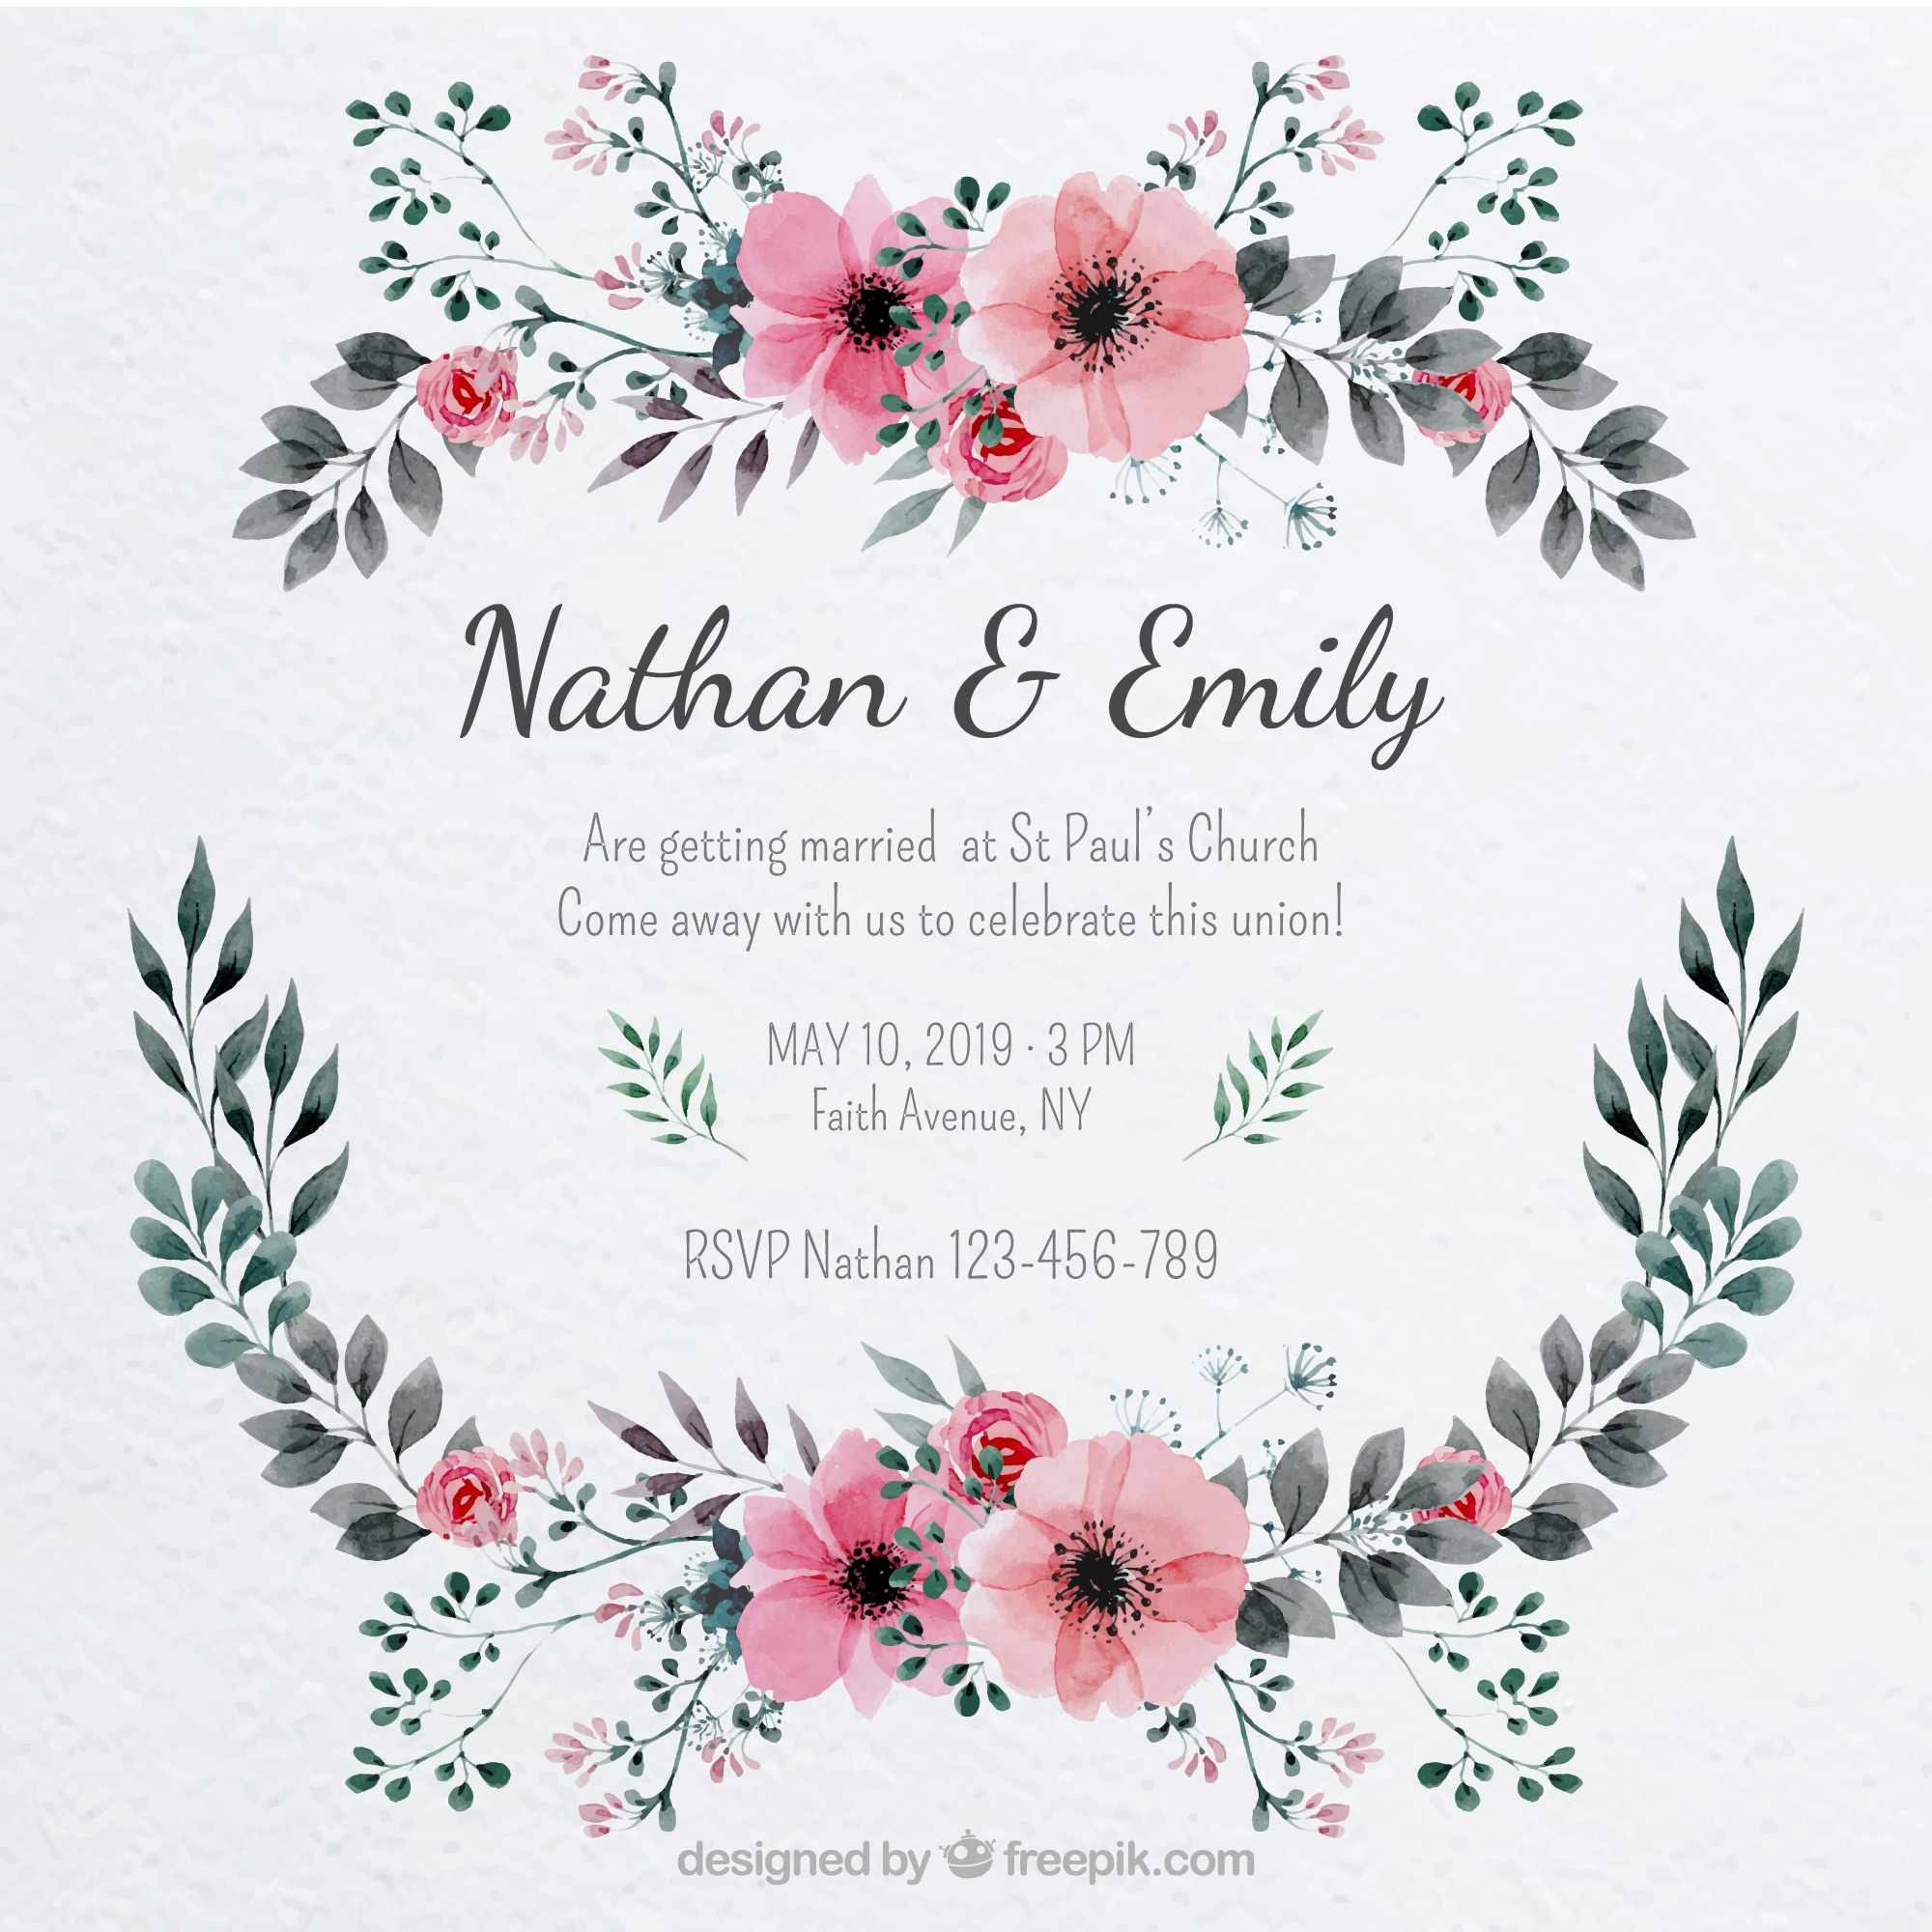 Pretty wedding invitation with a floral frame